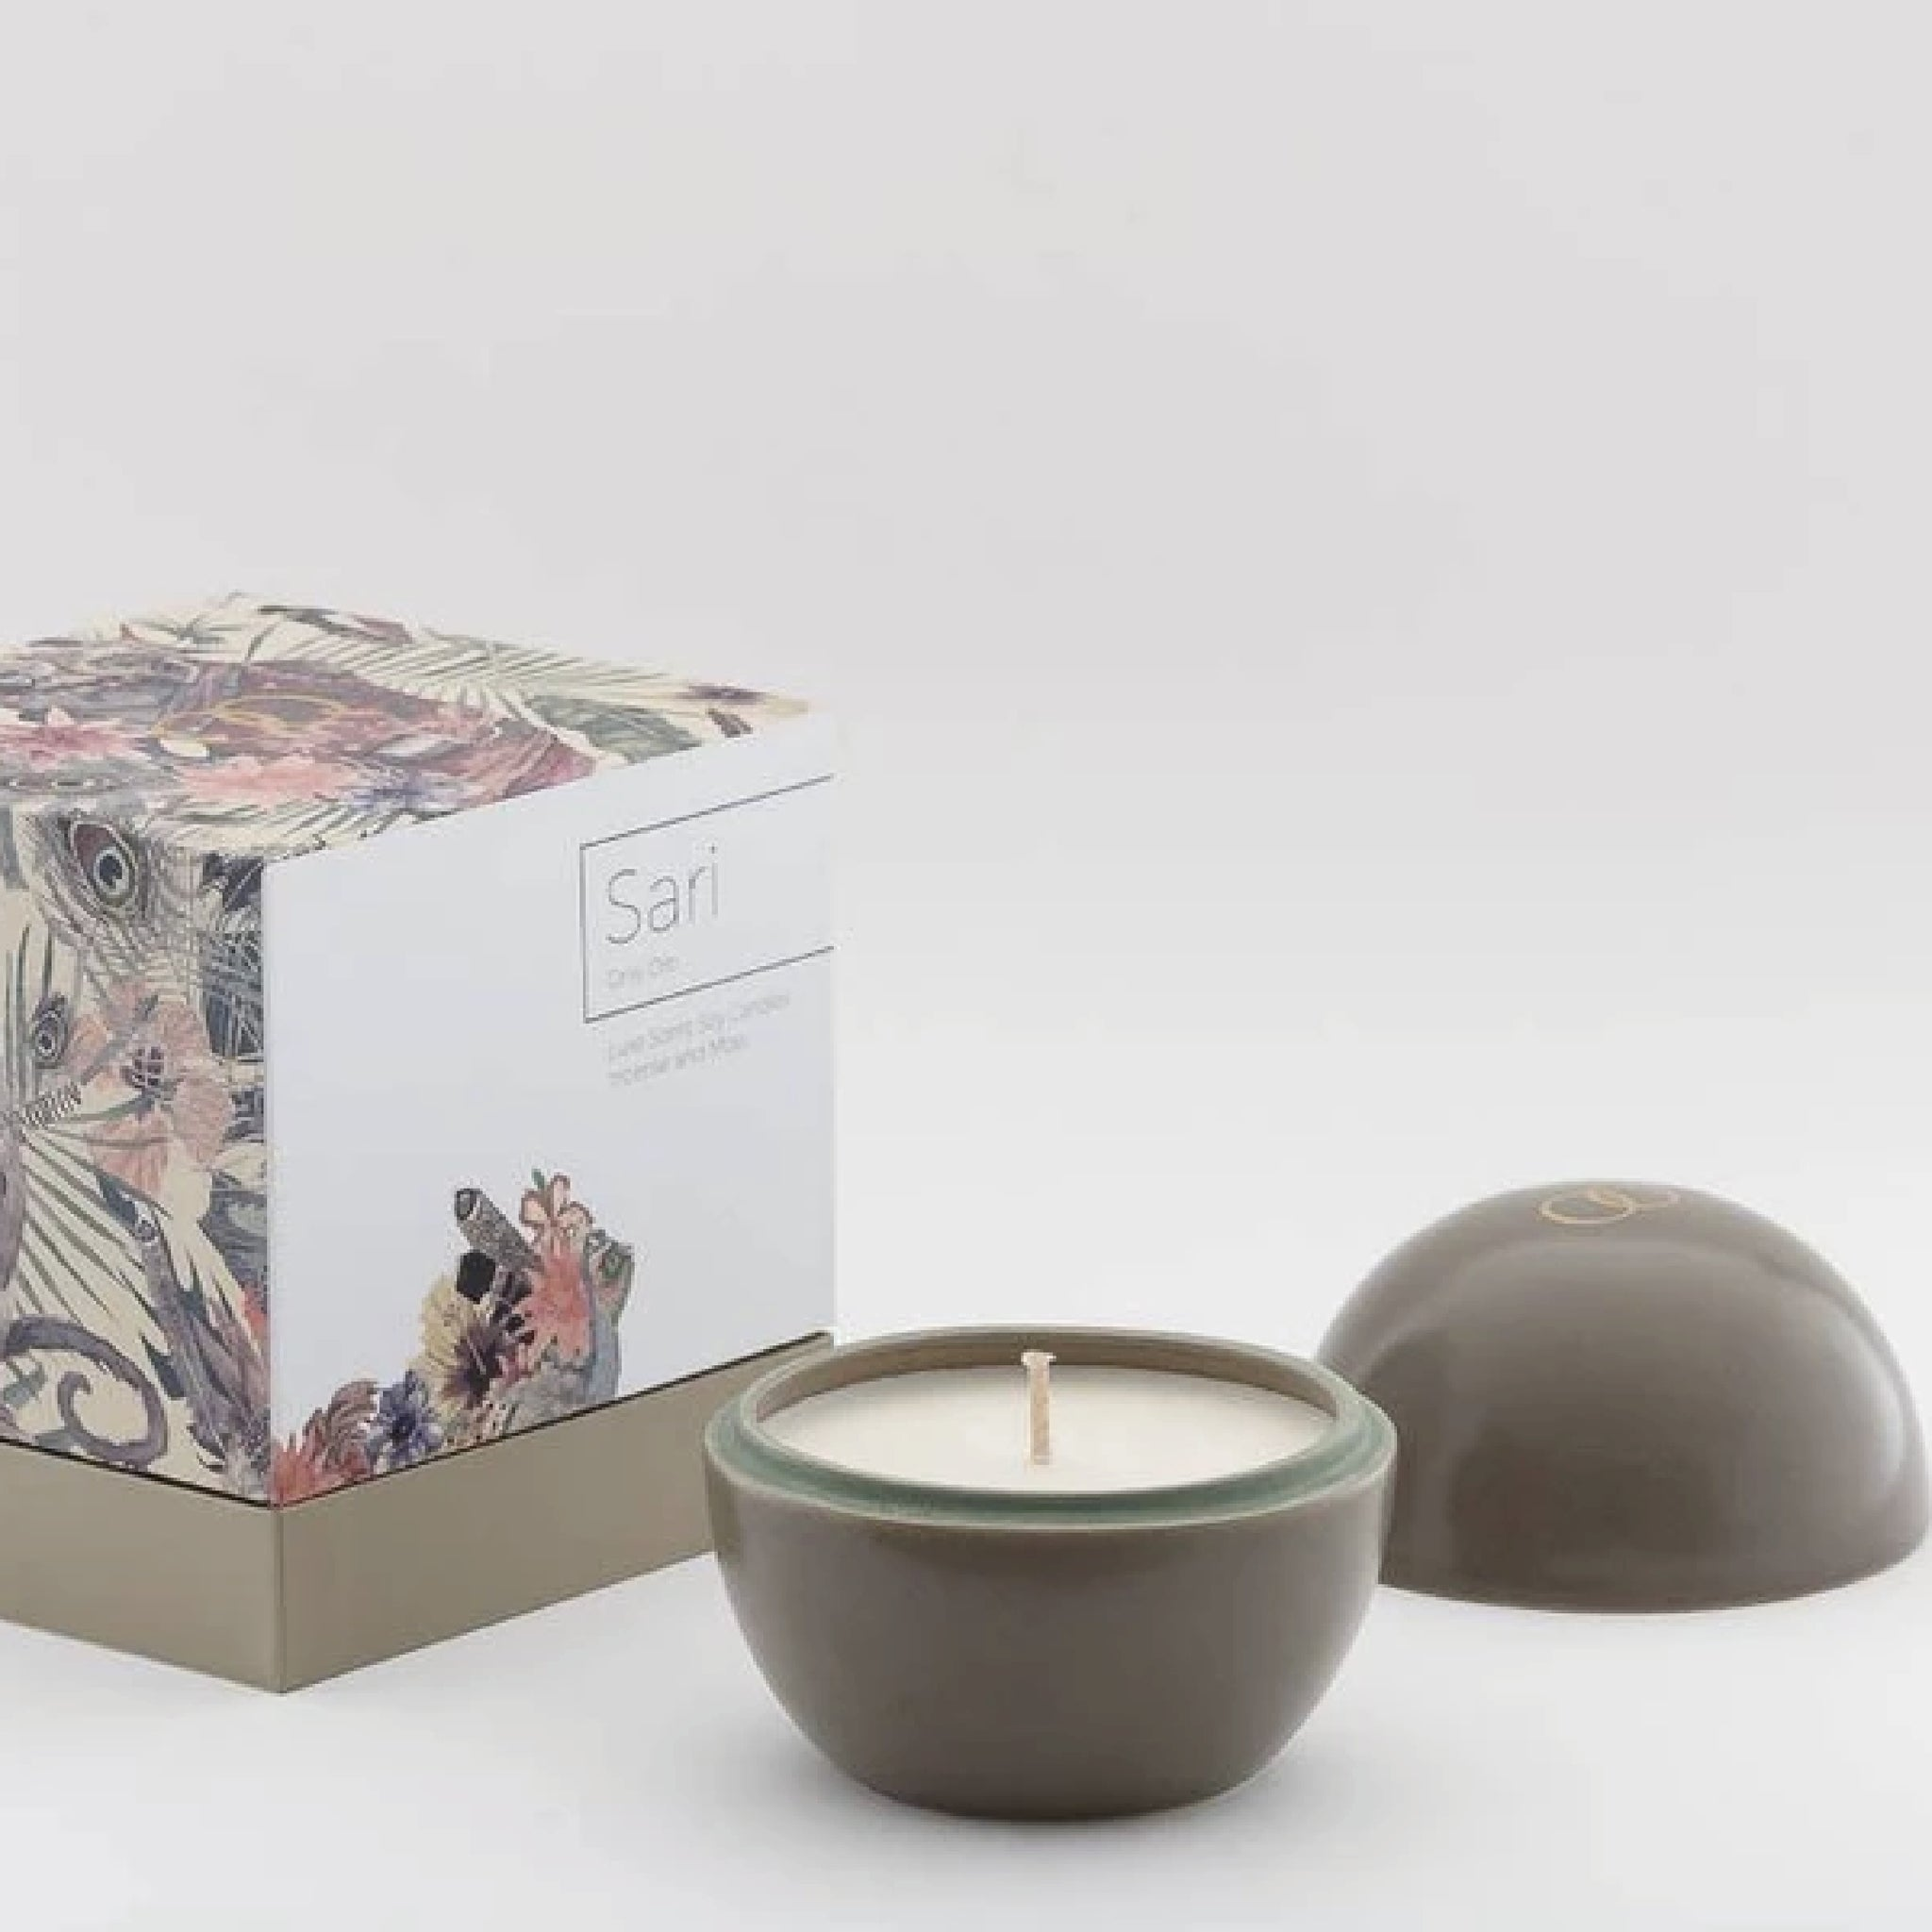 Only Orb SARI - Incense & Moss Candle in Ceramic Orb